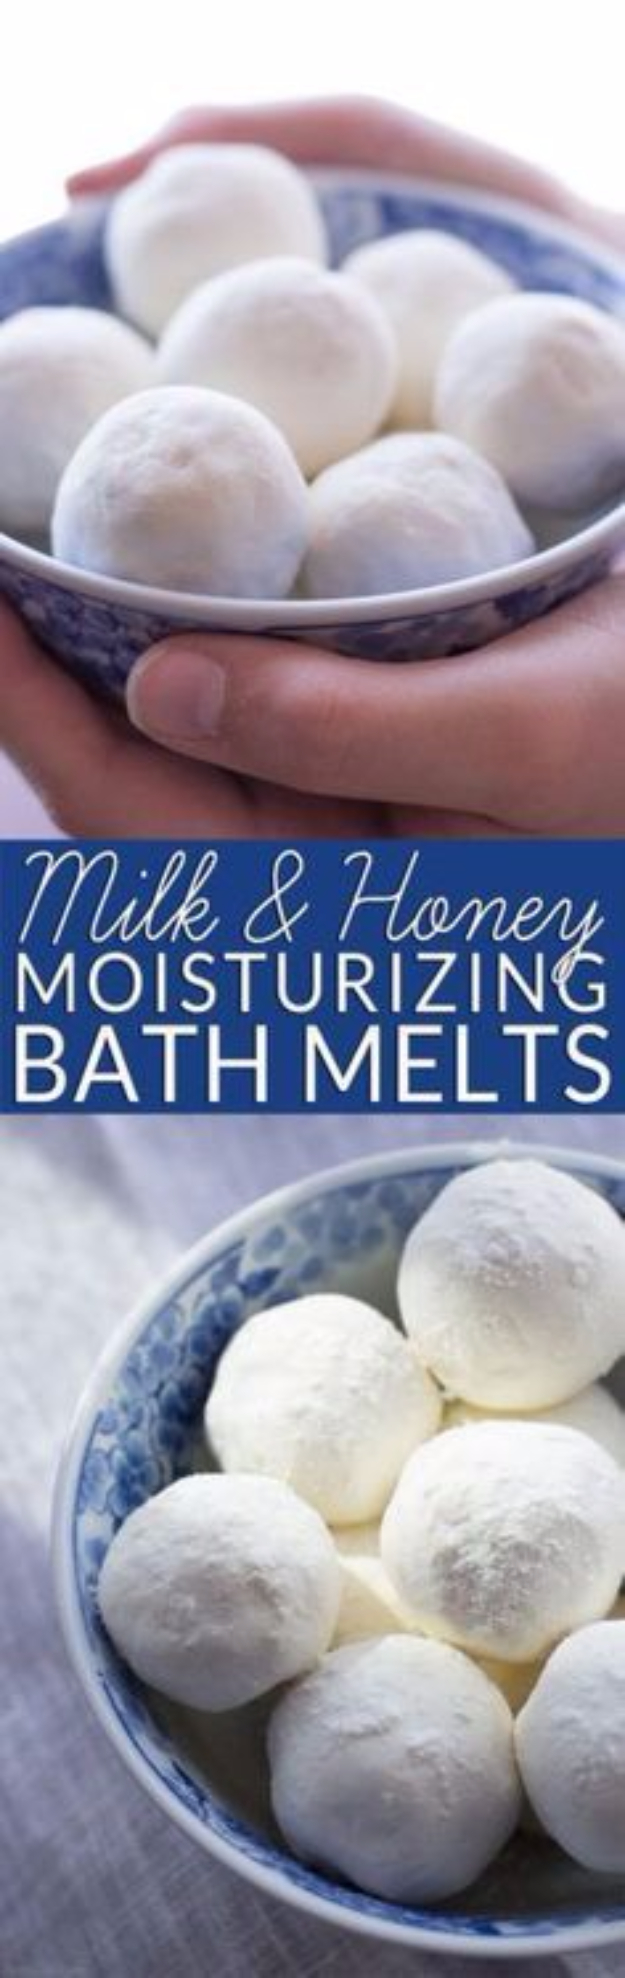 DIY Beauty Ideas and Recipes for Products You Can Make At Home - Milk And Honey Moisturizing Bath Melts - Easy Tutorials and Recipe Ideas for Face, Skin, Hair, Makeup, Lips - 3 Ingredient, Coconut Oil, Cheap Knock Offs, Baking Soda and Natural Product - Cool Homemade Gifts for Teens and Women